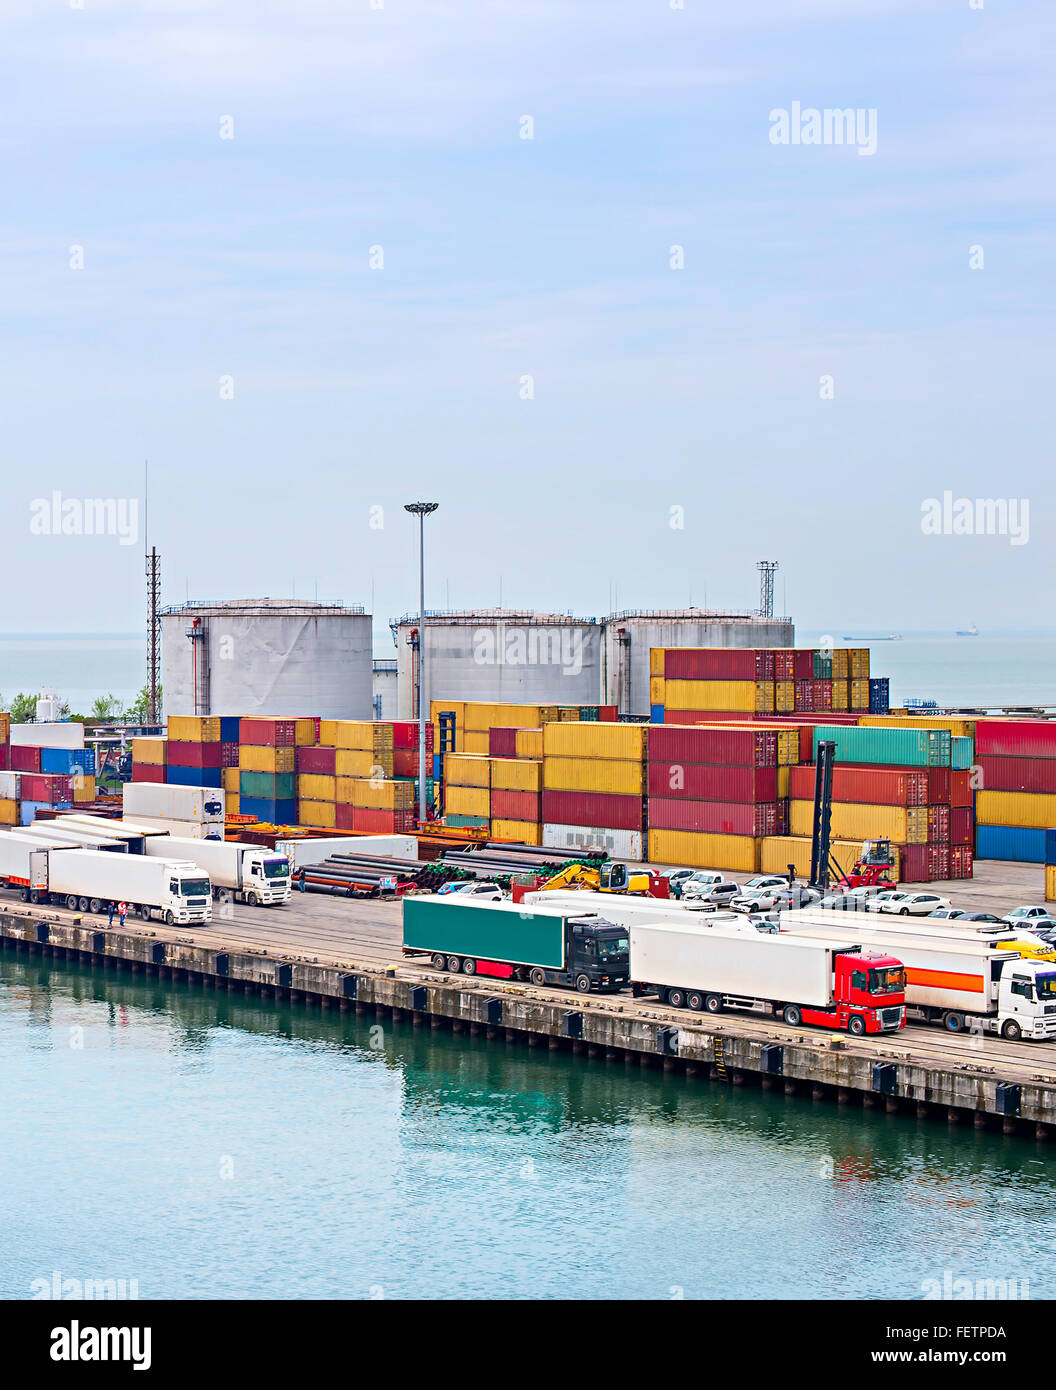 Trucks and containers in Batumi industrial sea port. Georgia - Stock Image